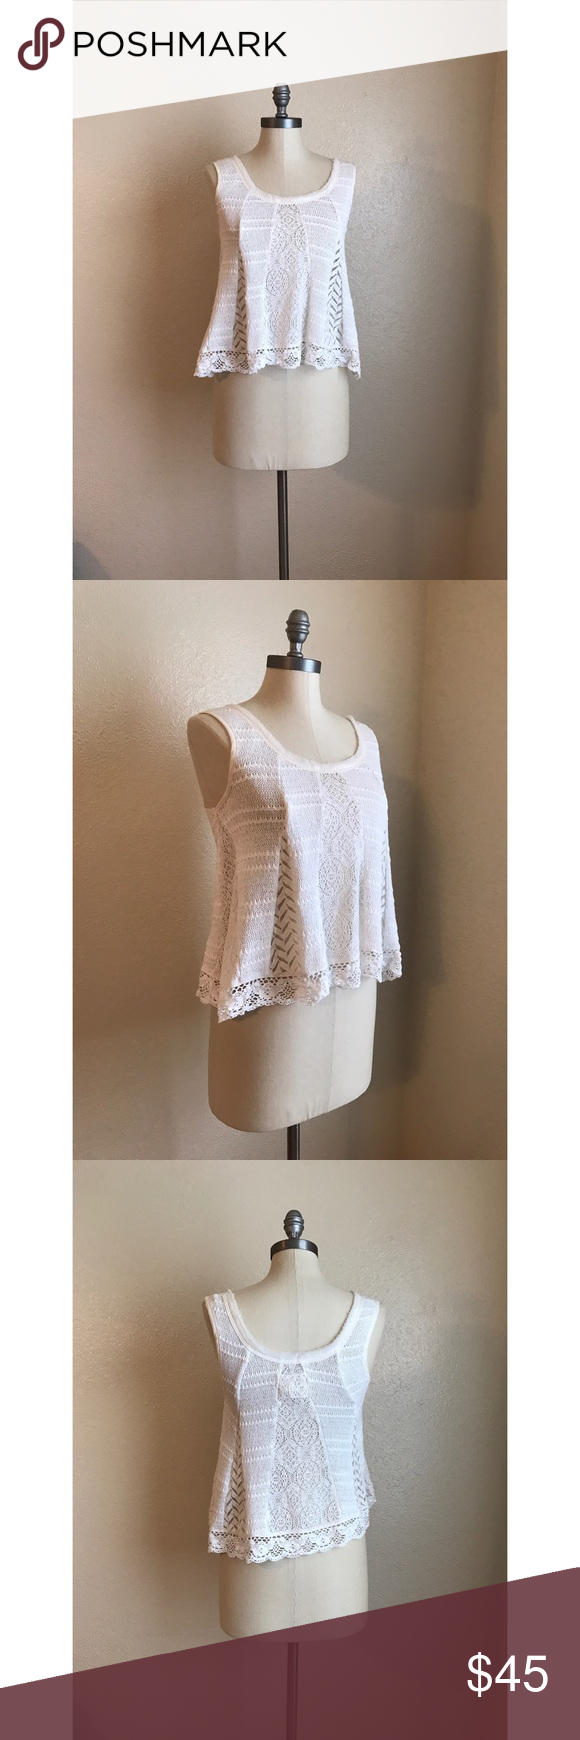 ❤️Anthropologie Meadow Rue Tank❤️ Excellent condition. Knit tank. Size xsmall. No rips, stains or tears. Anthropologie Tops Tank Tops